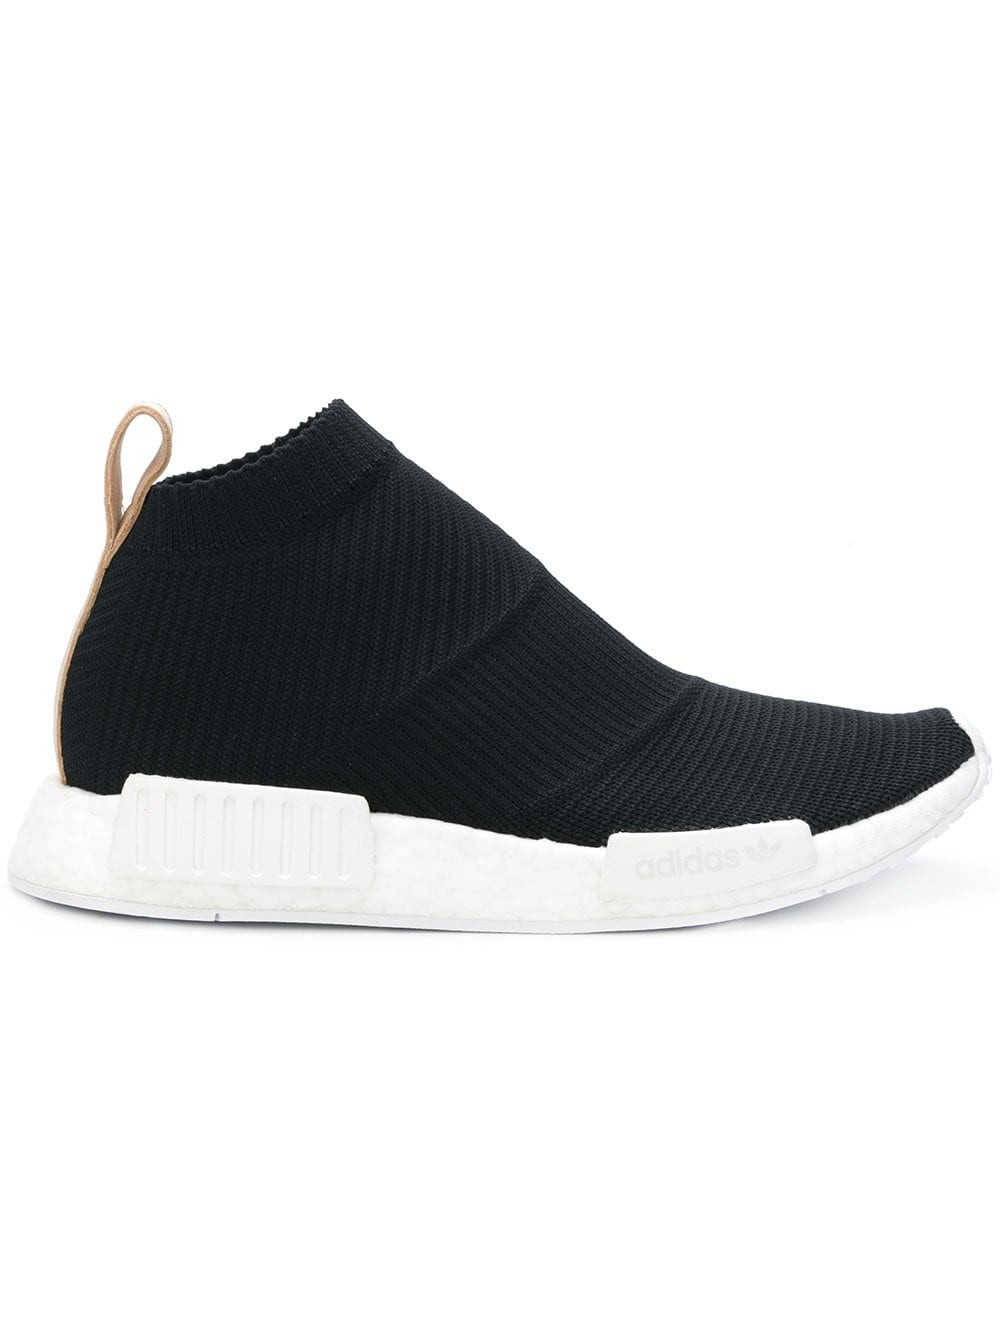 Adidas NMD City Sock Negras/Tan Leather AQ0948